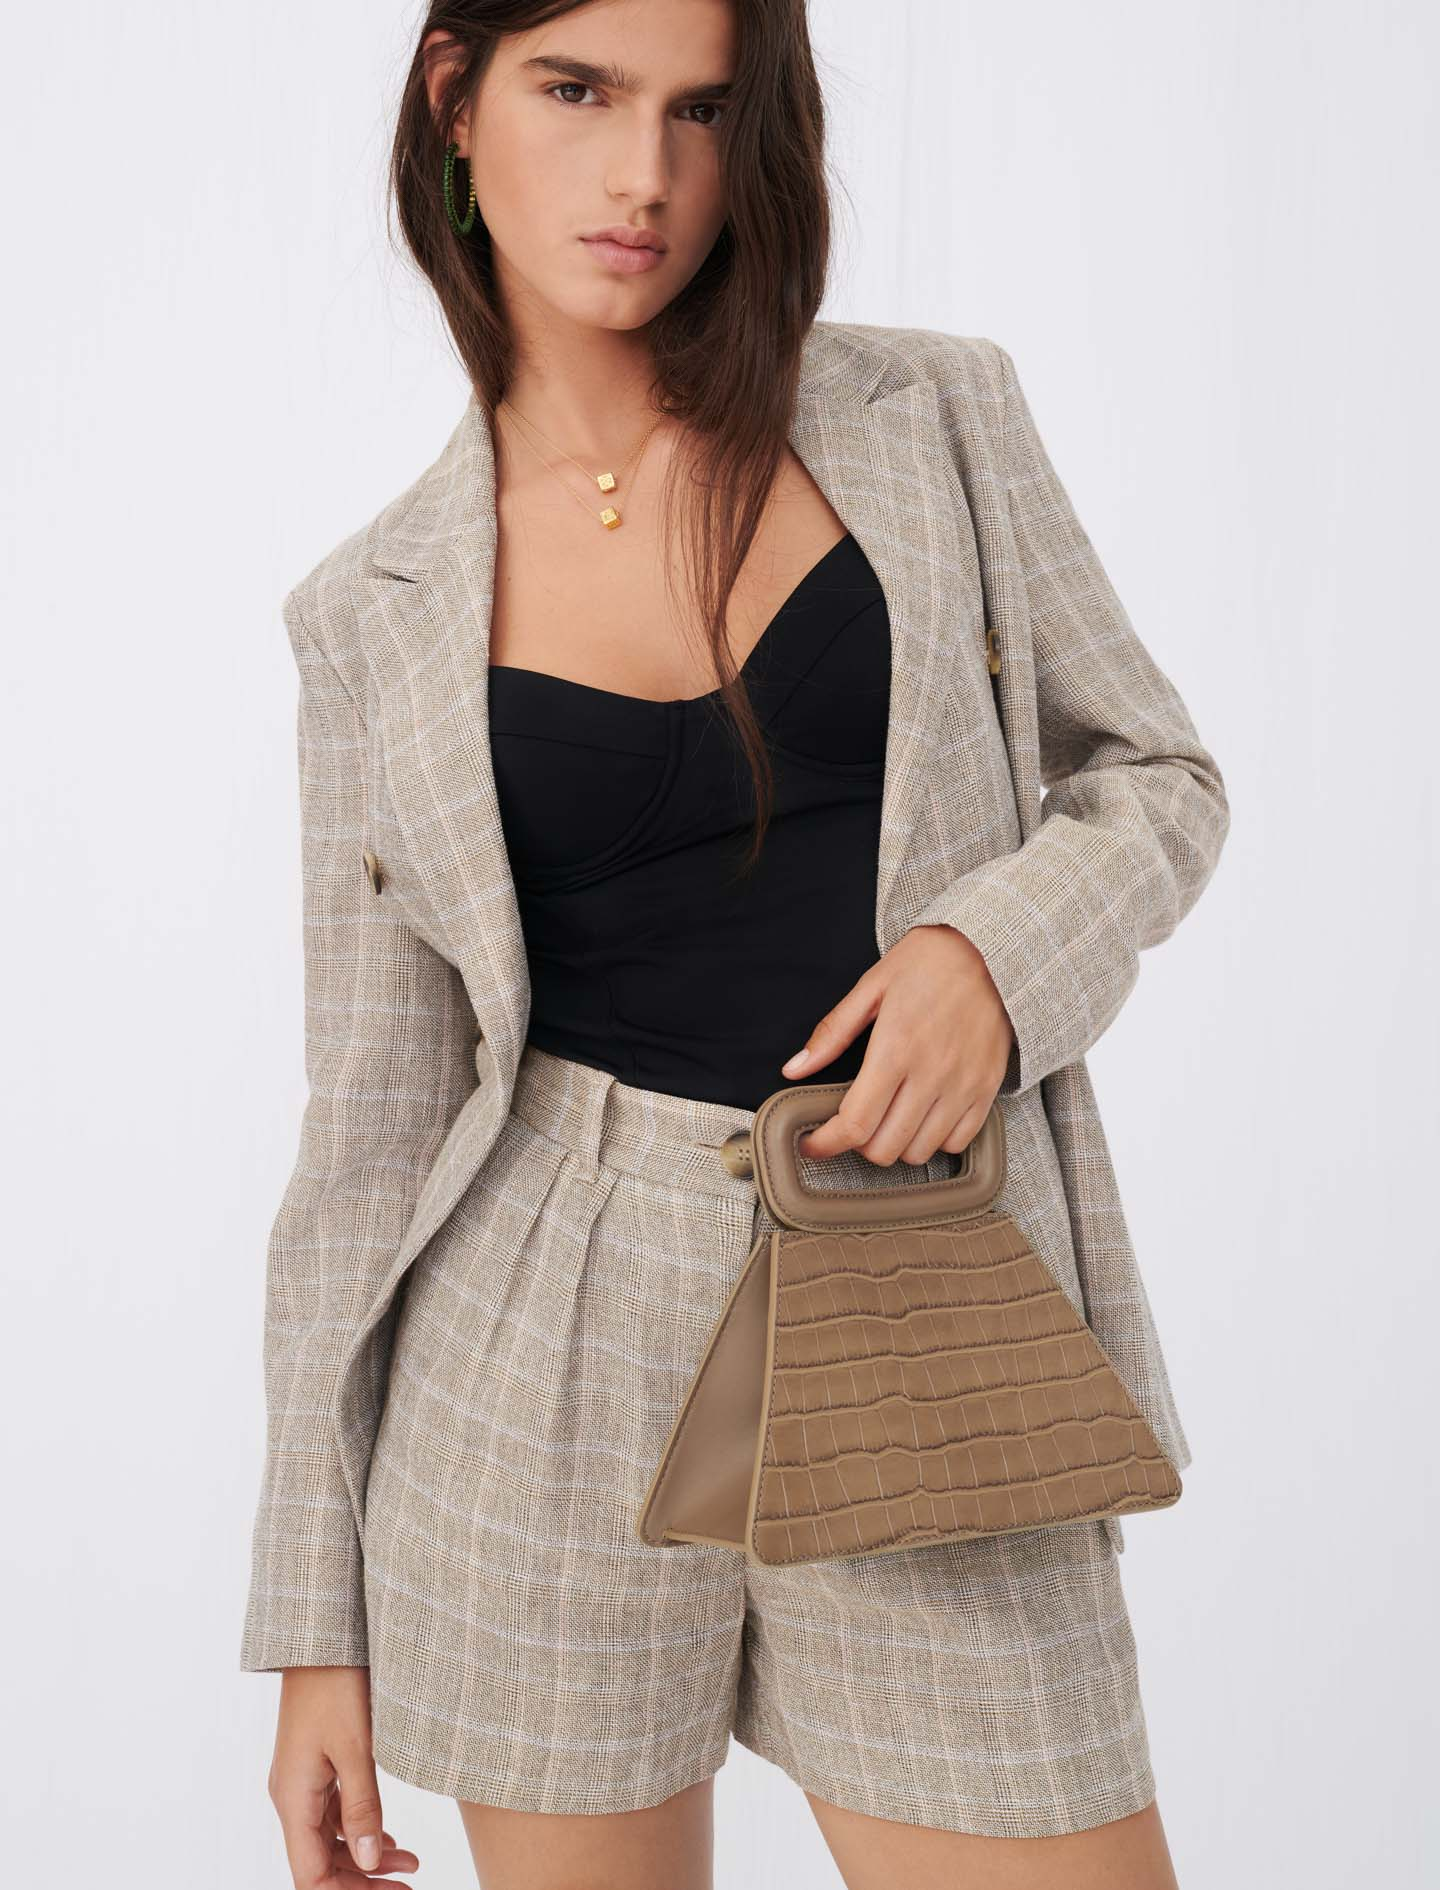 Pyramid bag with embossed leather handle - Grey